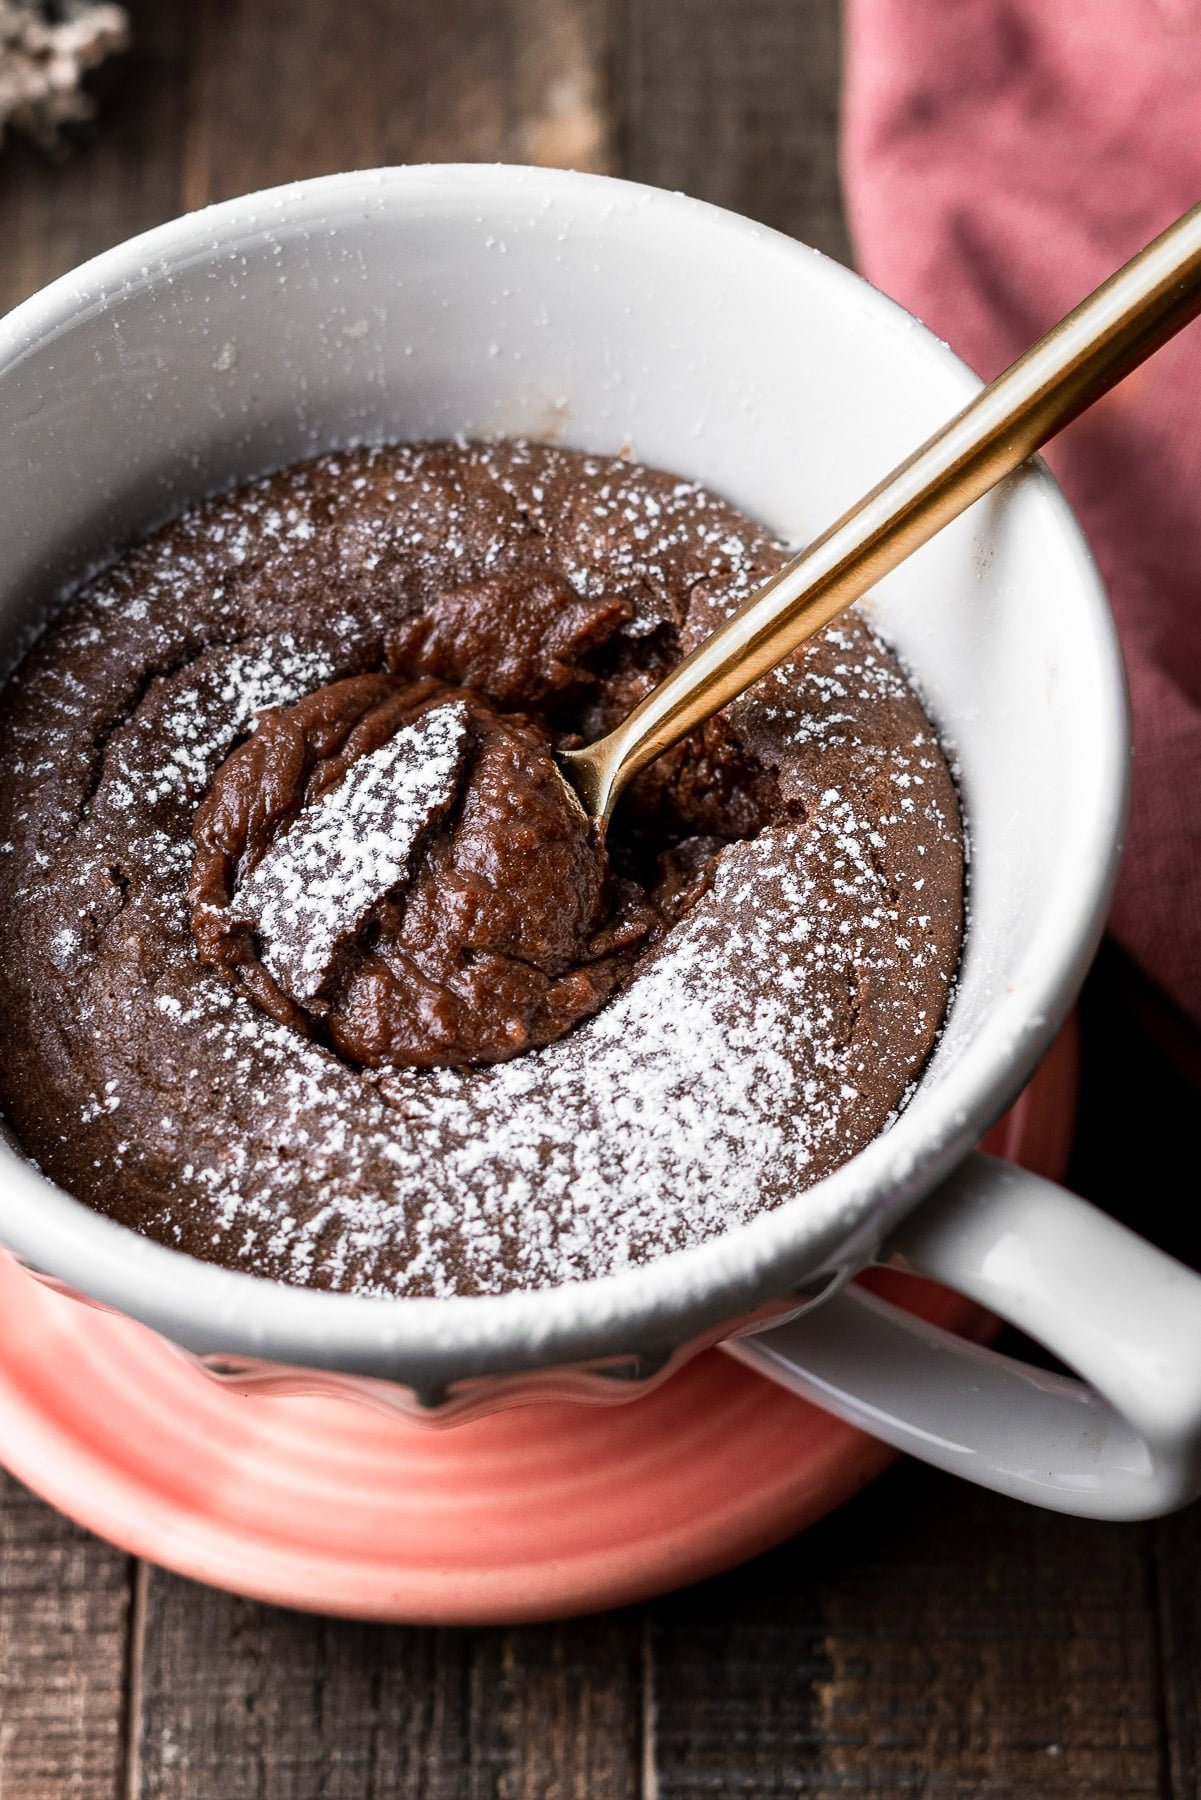 Nutella Mug Cake with a spoon in the Molten Center